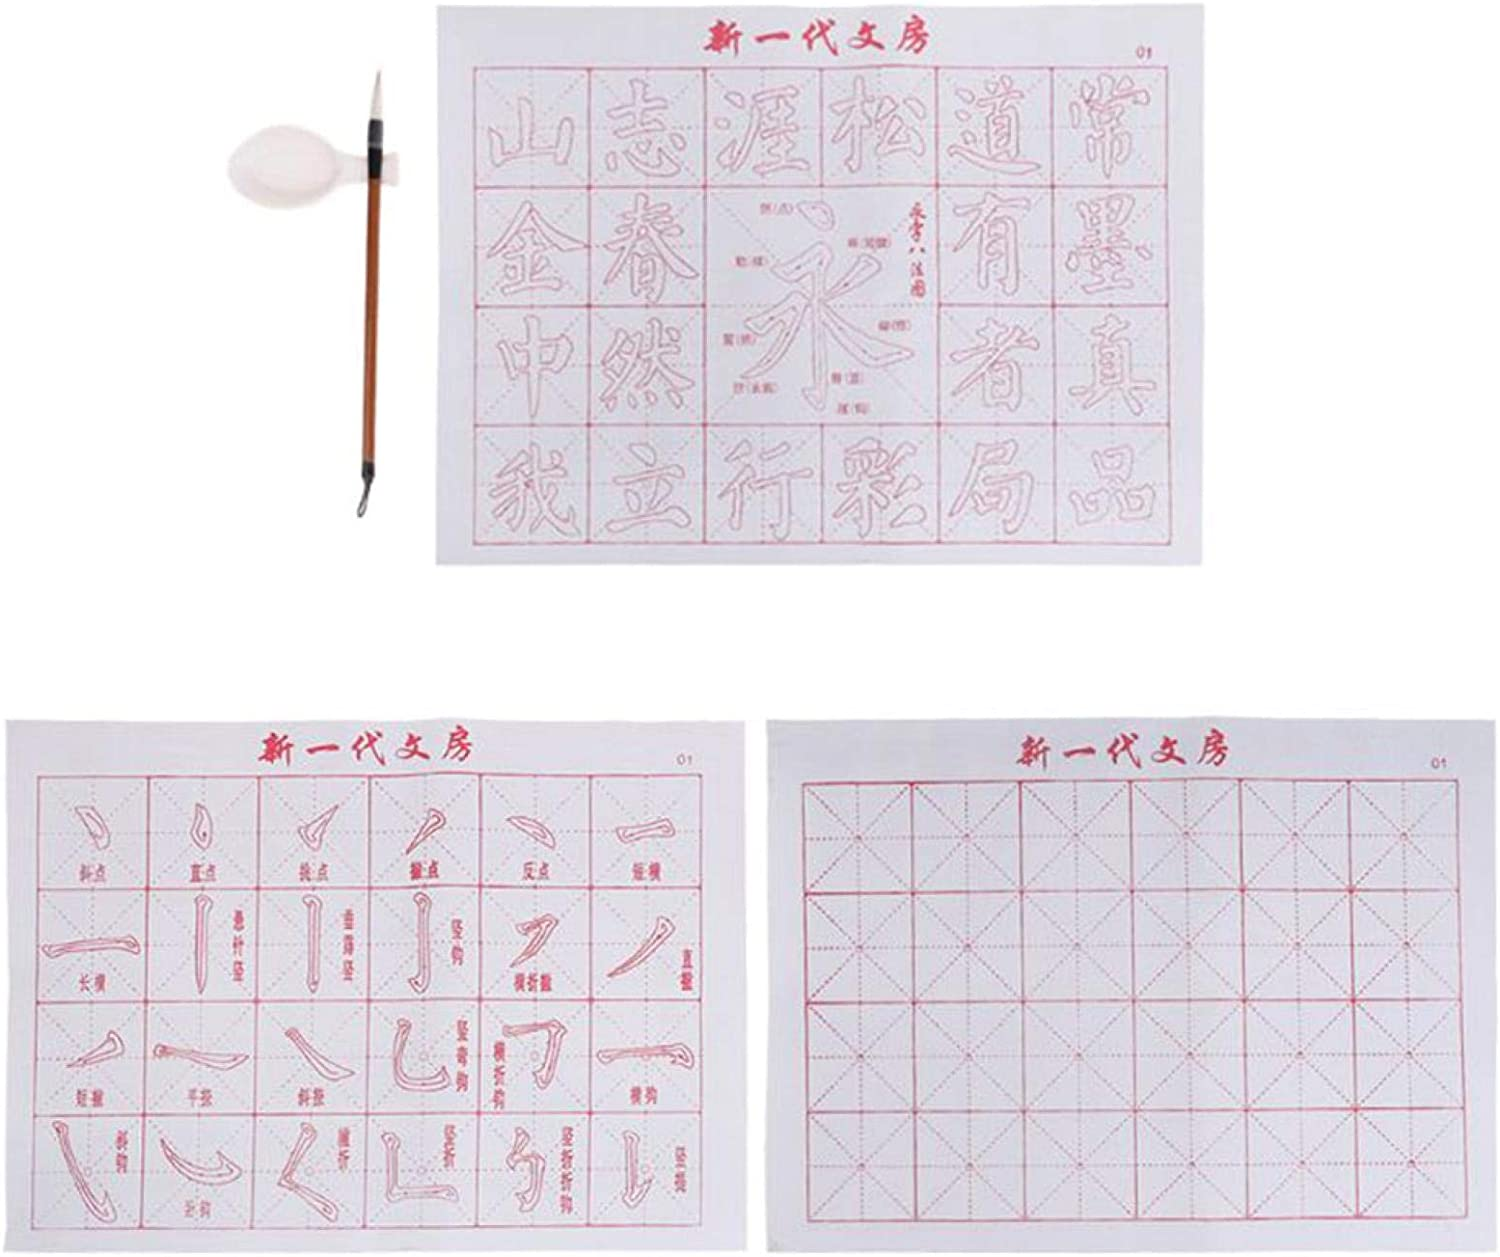 Reusable Chinese Challenge the lowest price of Japan Inventory cleanup selling sale Calligraphy Brush Water Magic Cloth Writing for